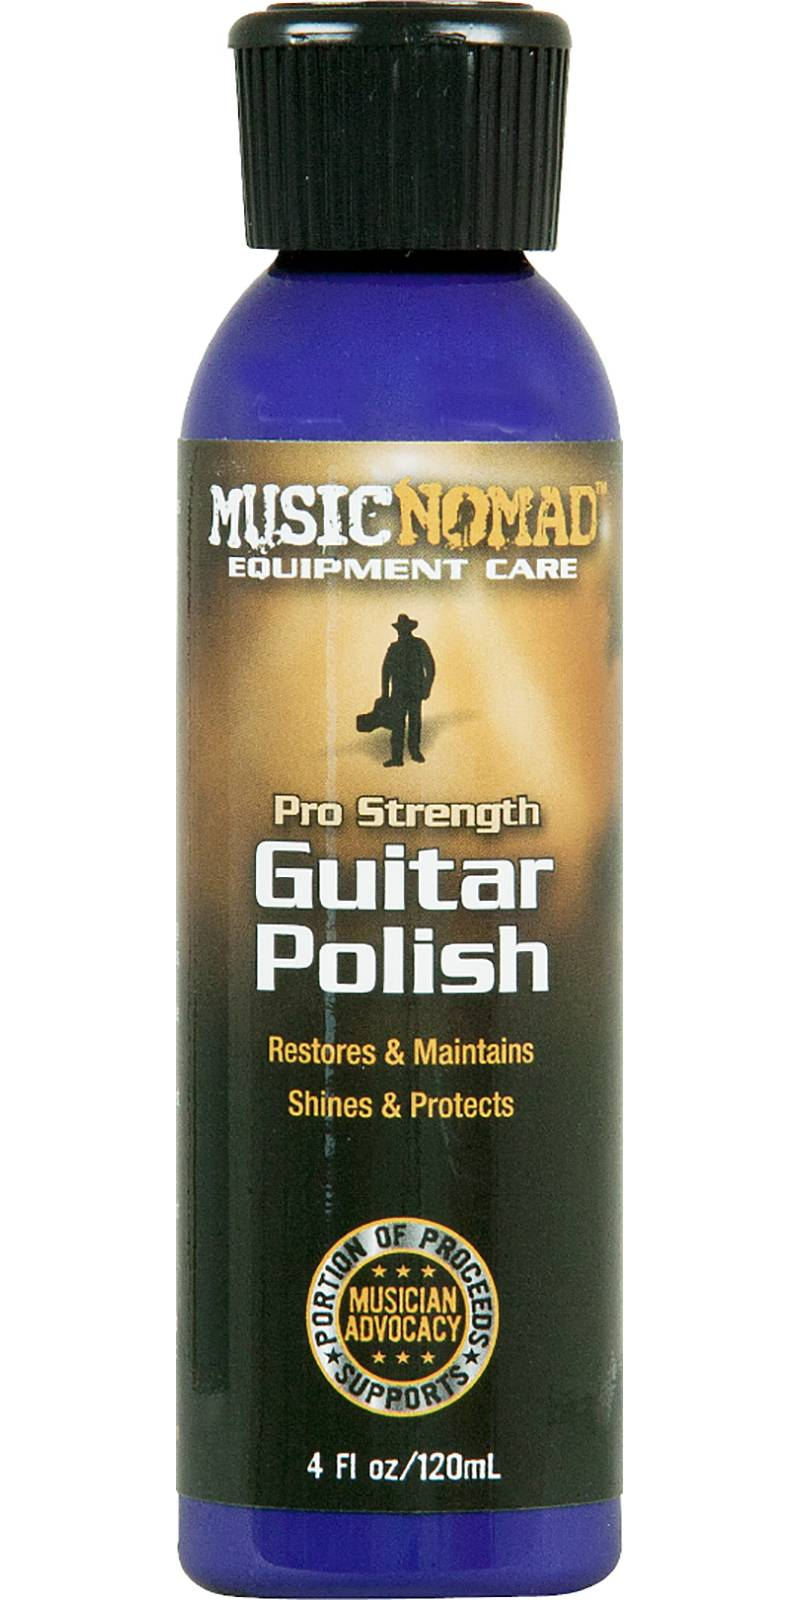 FORMULA MUSIC NOMAD GUITAR POLISH